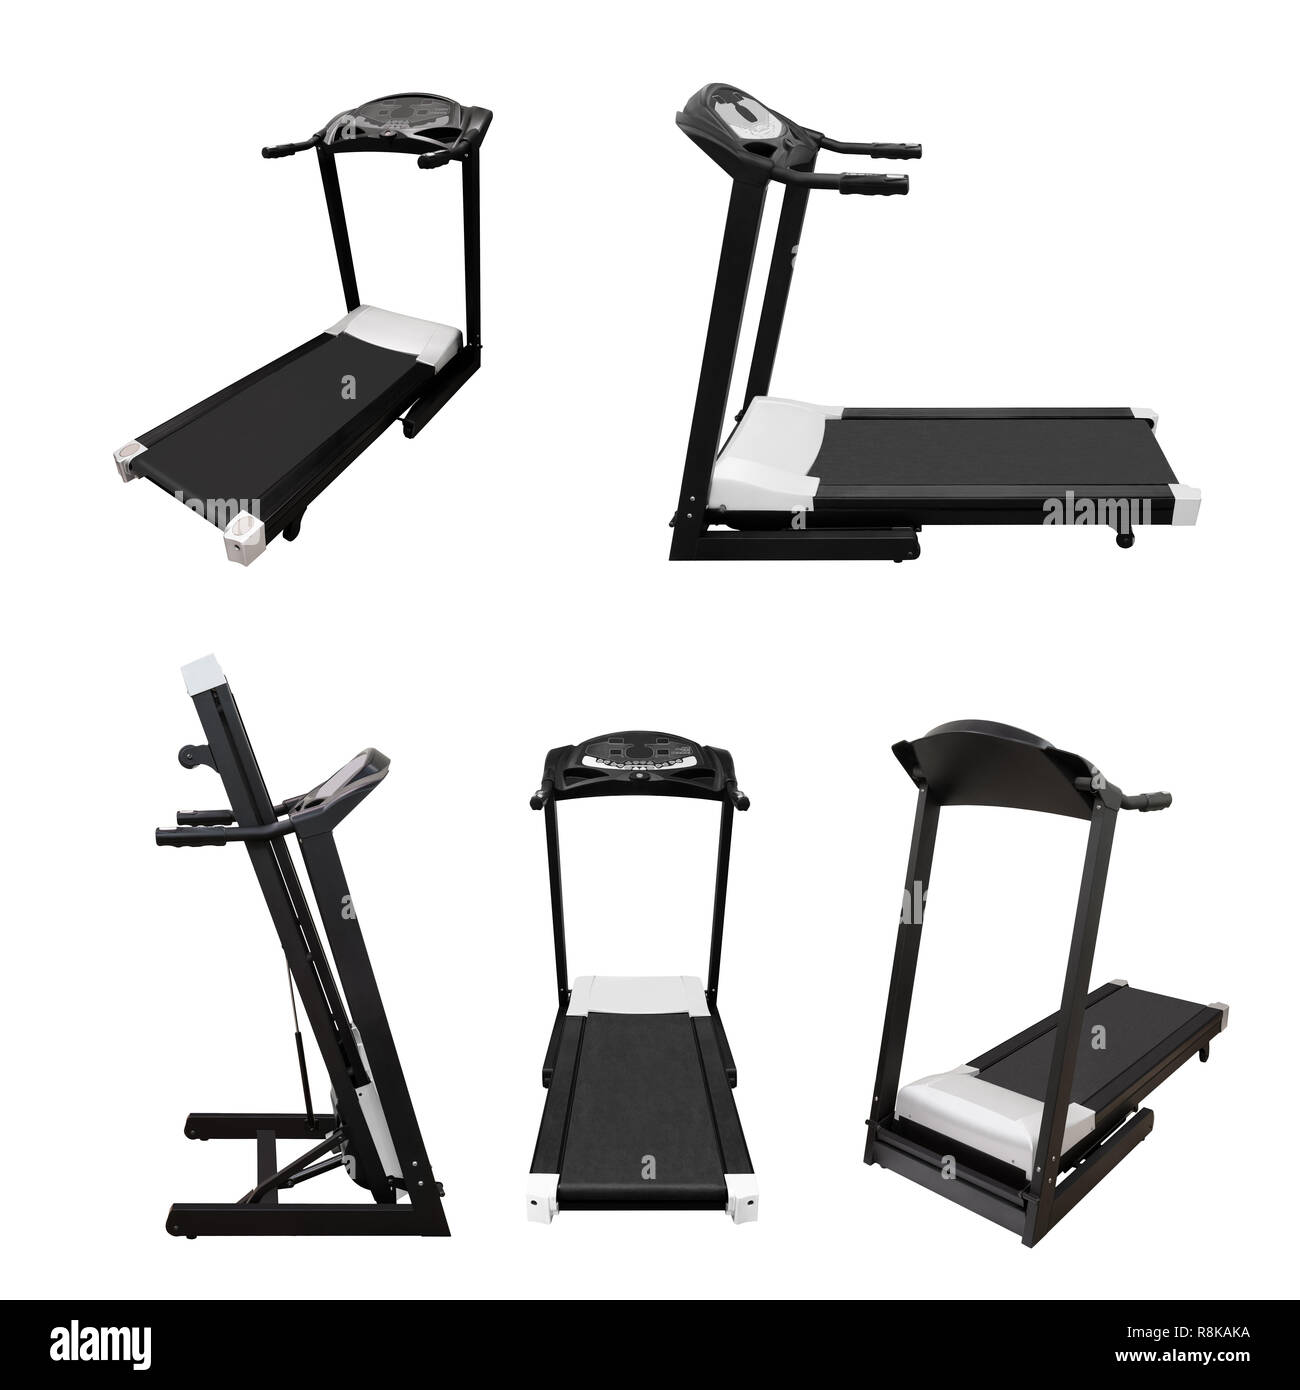 Treadmill fitness equipment isolated on white background - Stock Image